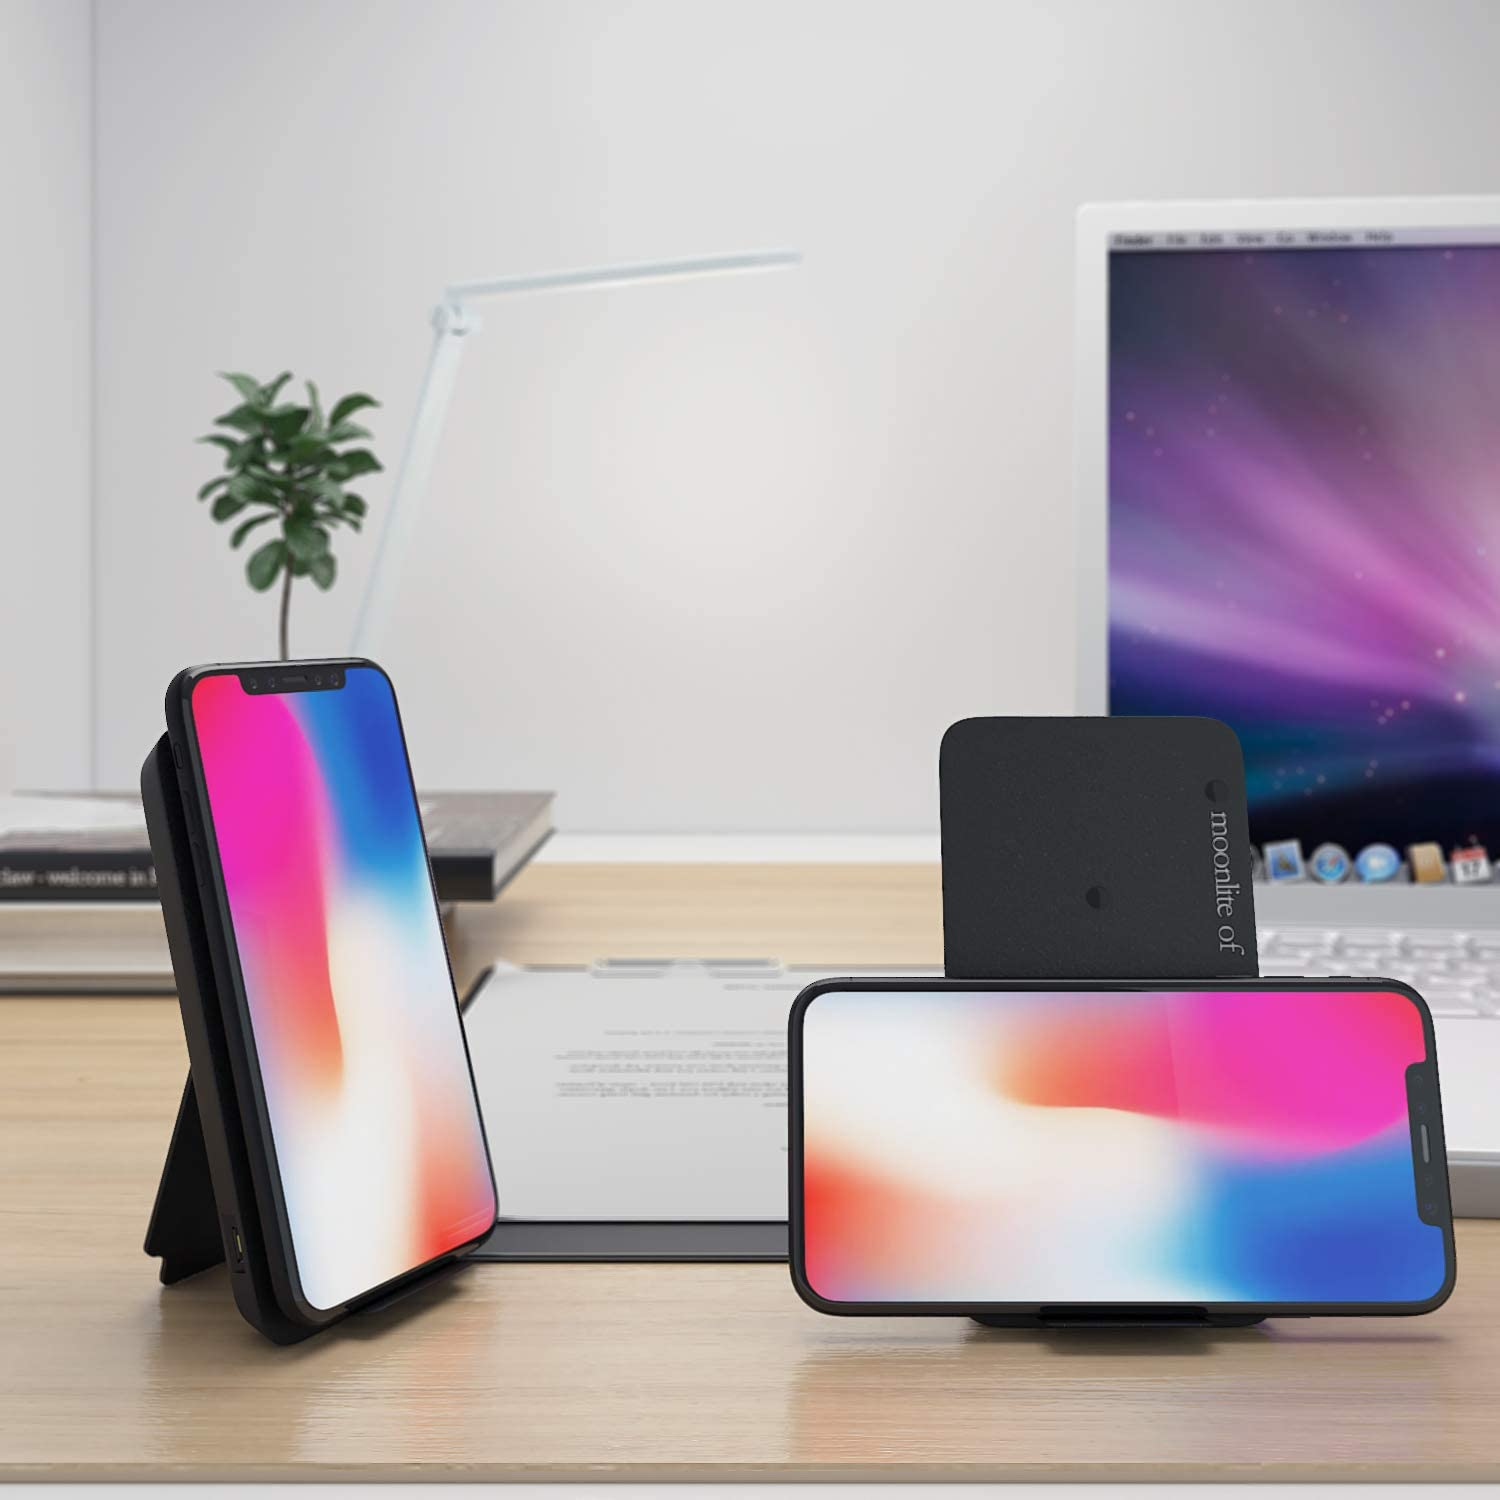 Wireless Charger Black2 Fast Wireless Charging Pad,Charging Dock//Station Replacement for Apple iPhone 8//8 Plus//X//XS//XS Max//XR Plus Samsung S9//S9+//S8//S8+//S7//Note 8 Qi Enabled 7.5//10w Devices